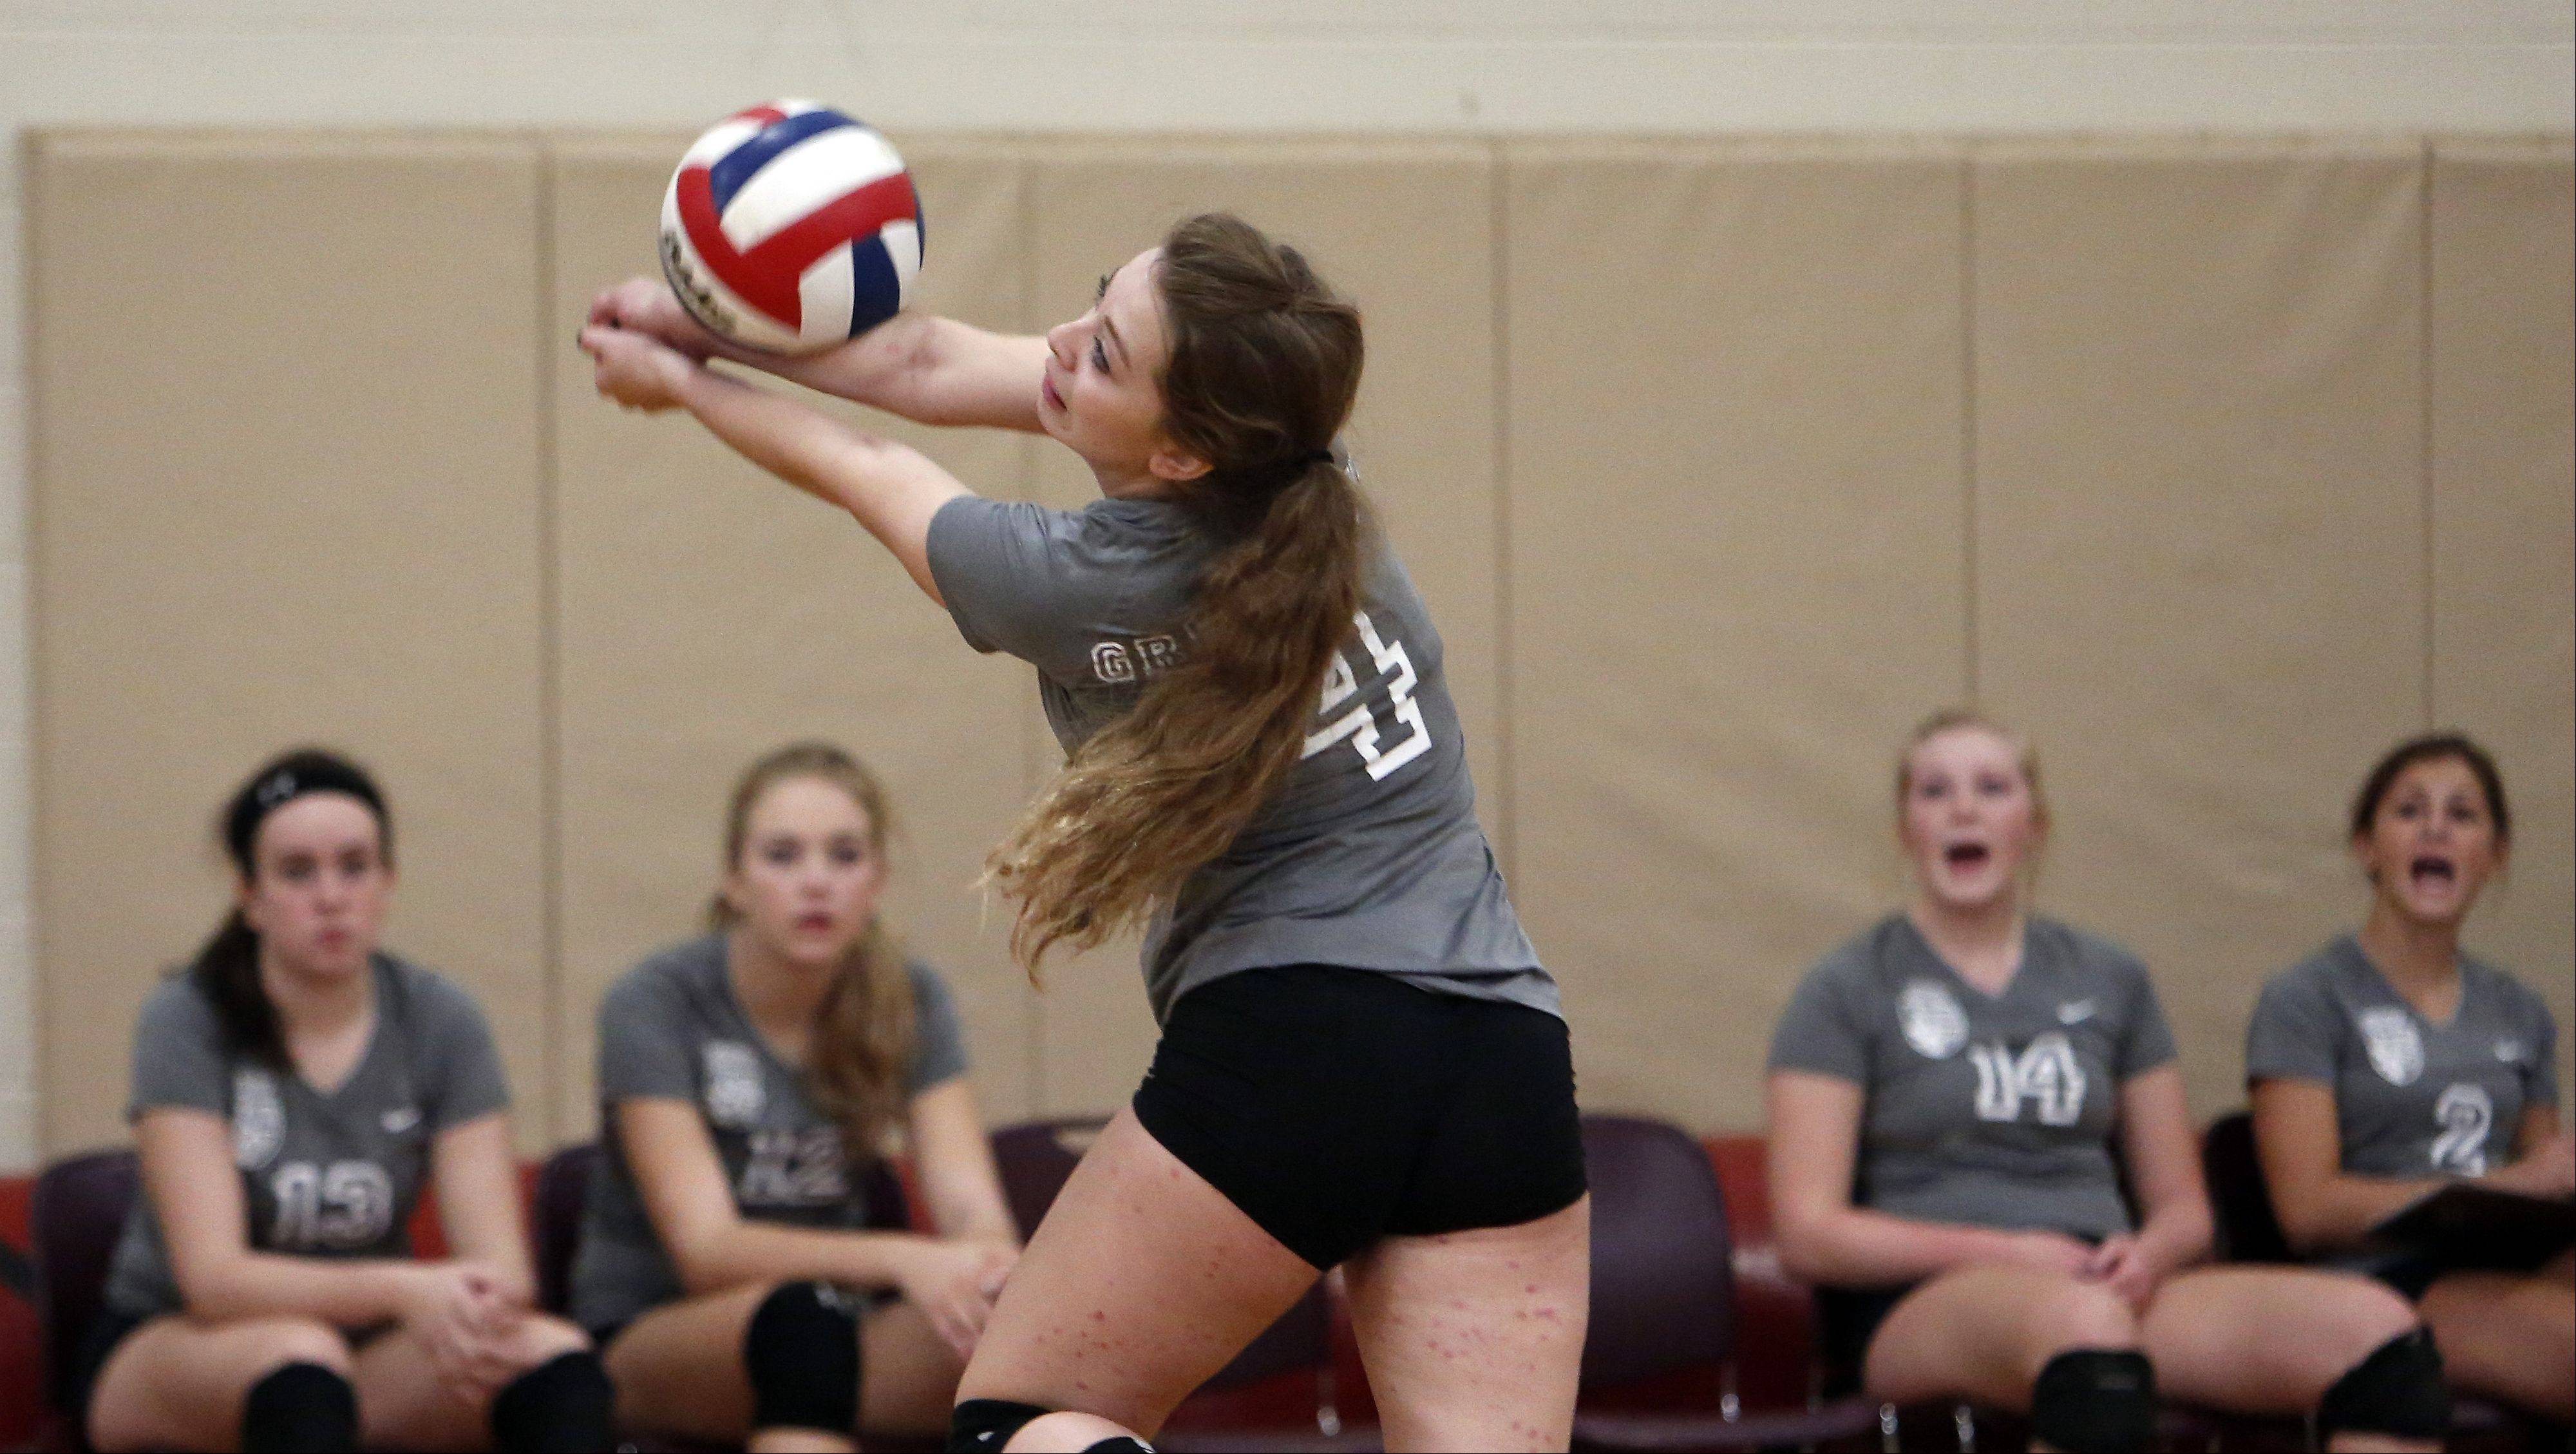 St. Edward's Clara McDowell with the dig against Jacobs during the 29th Annual Huntley High School Volleyball Tournament Saturday.